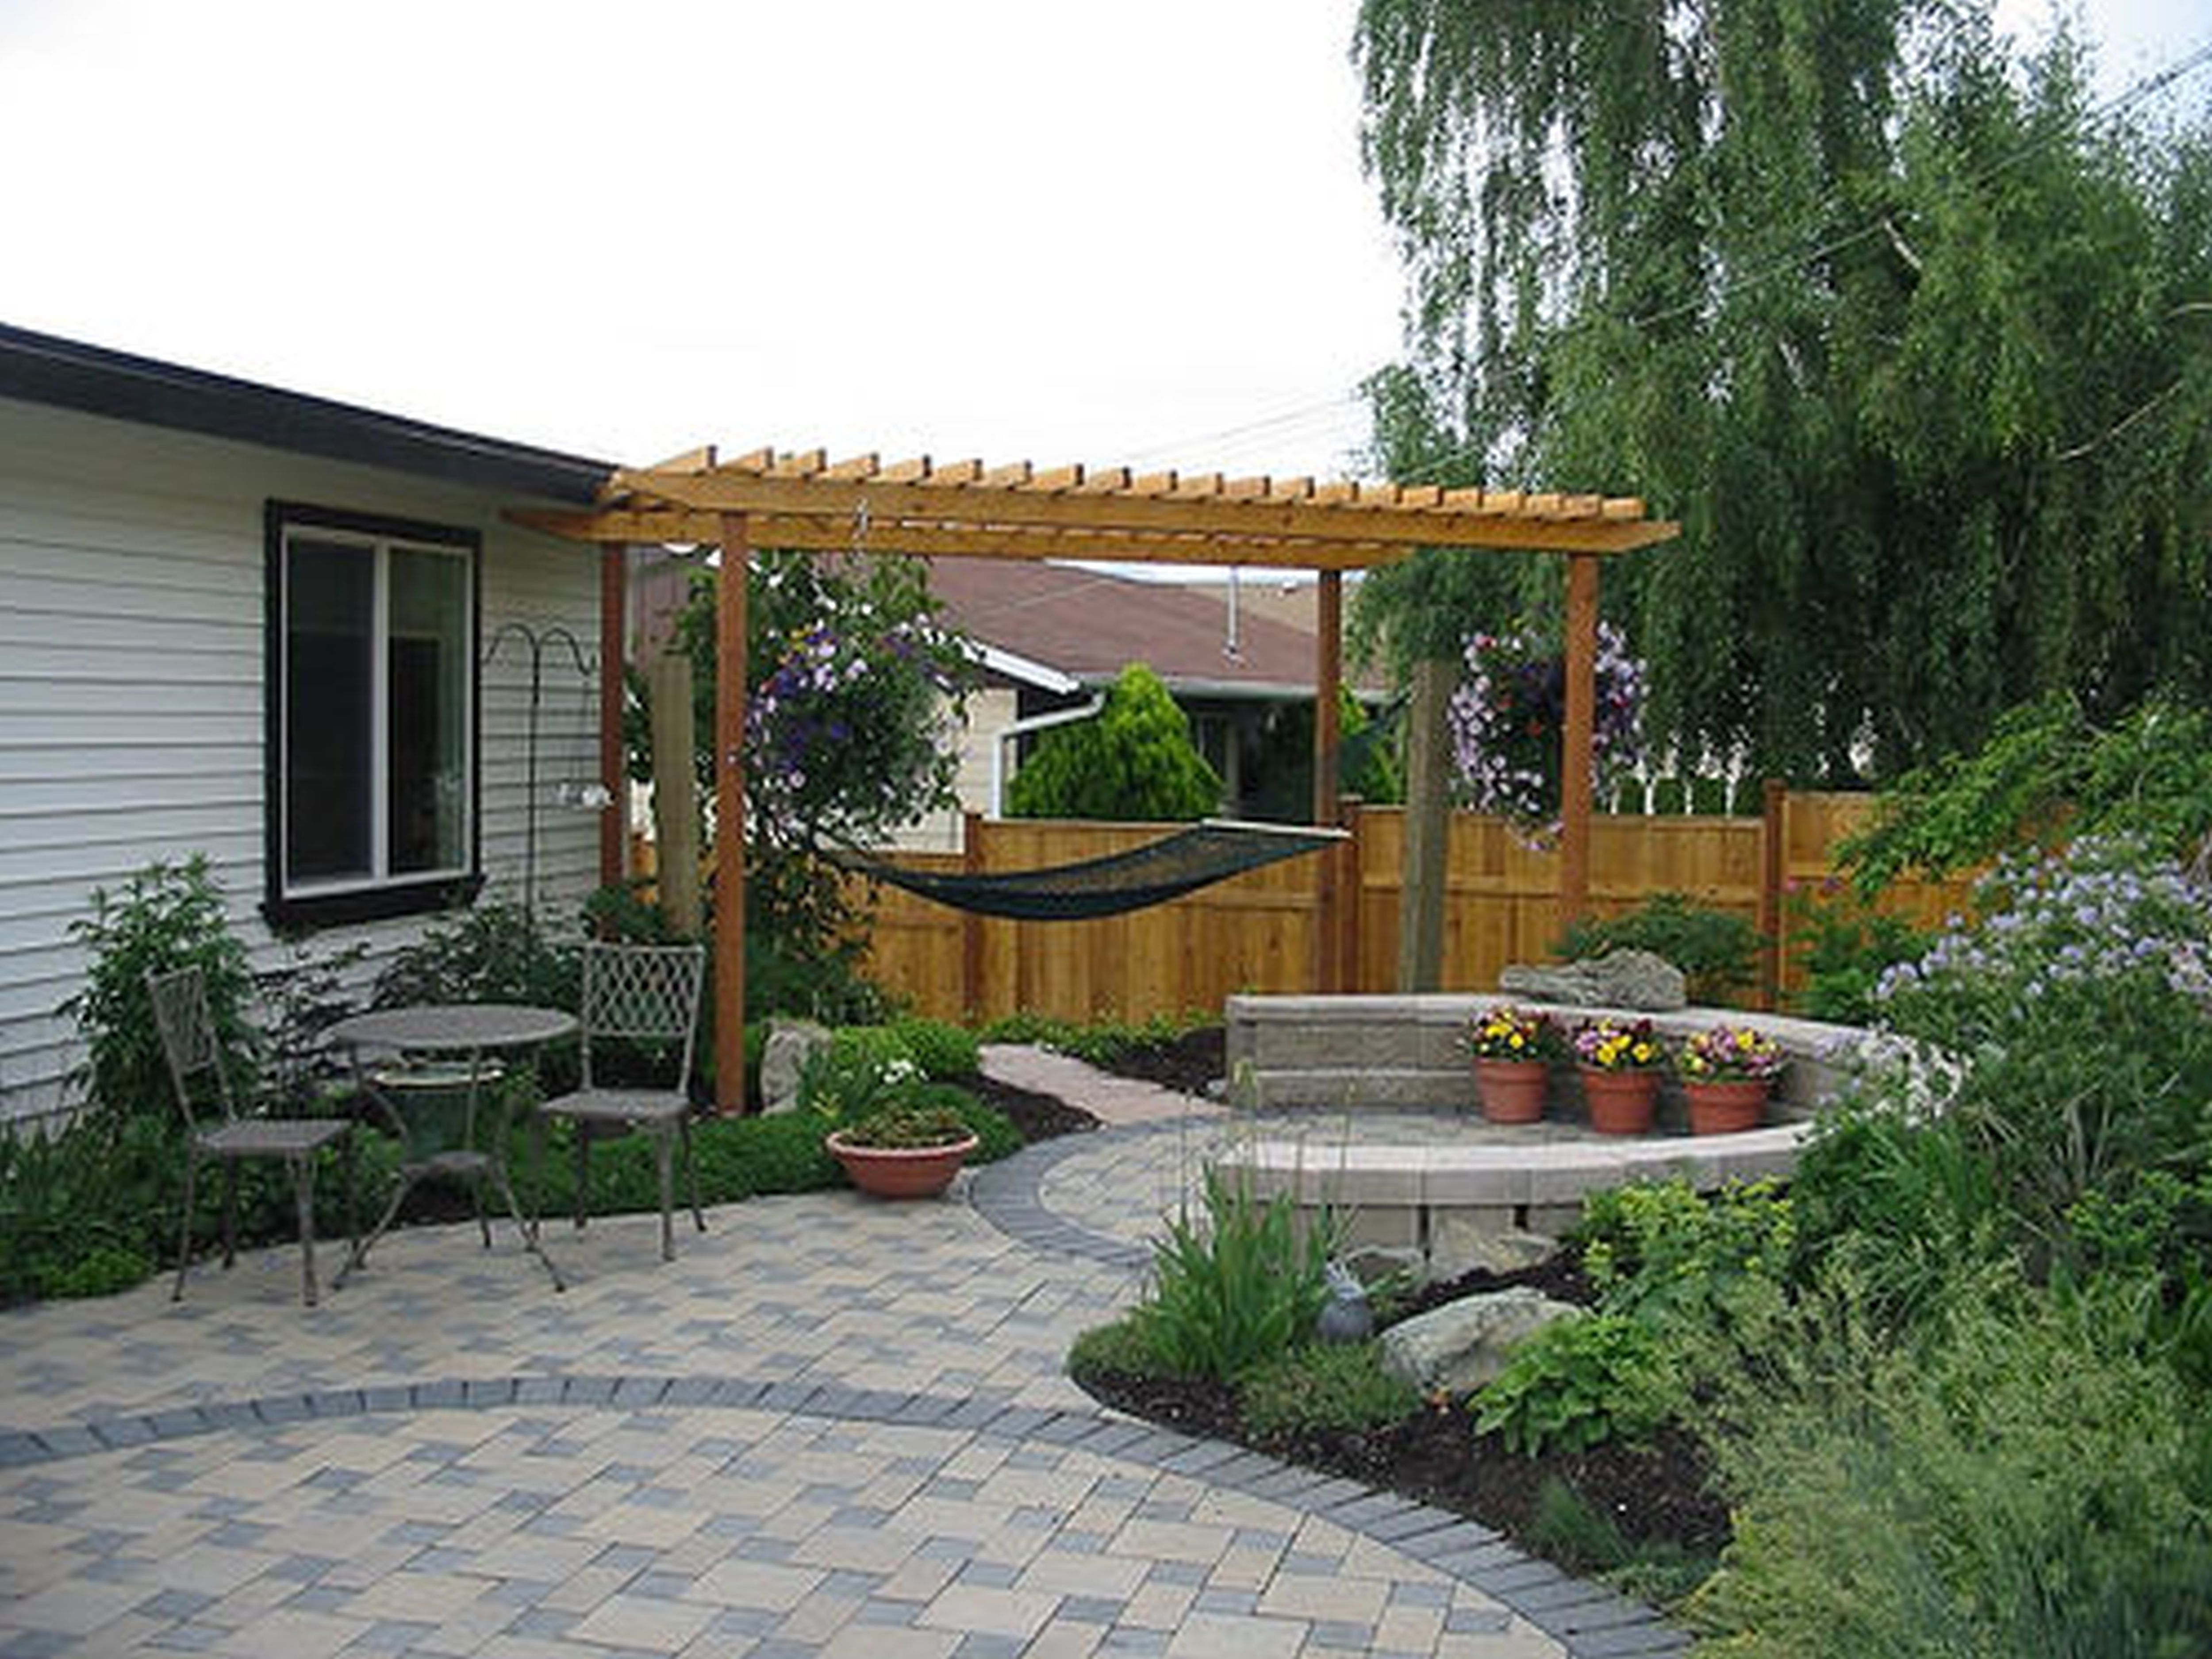 Backyard patio covers from usefulness to style homesfeed Backyard ideas